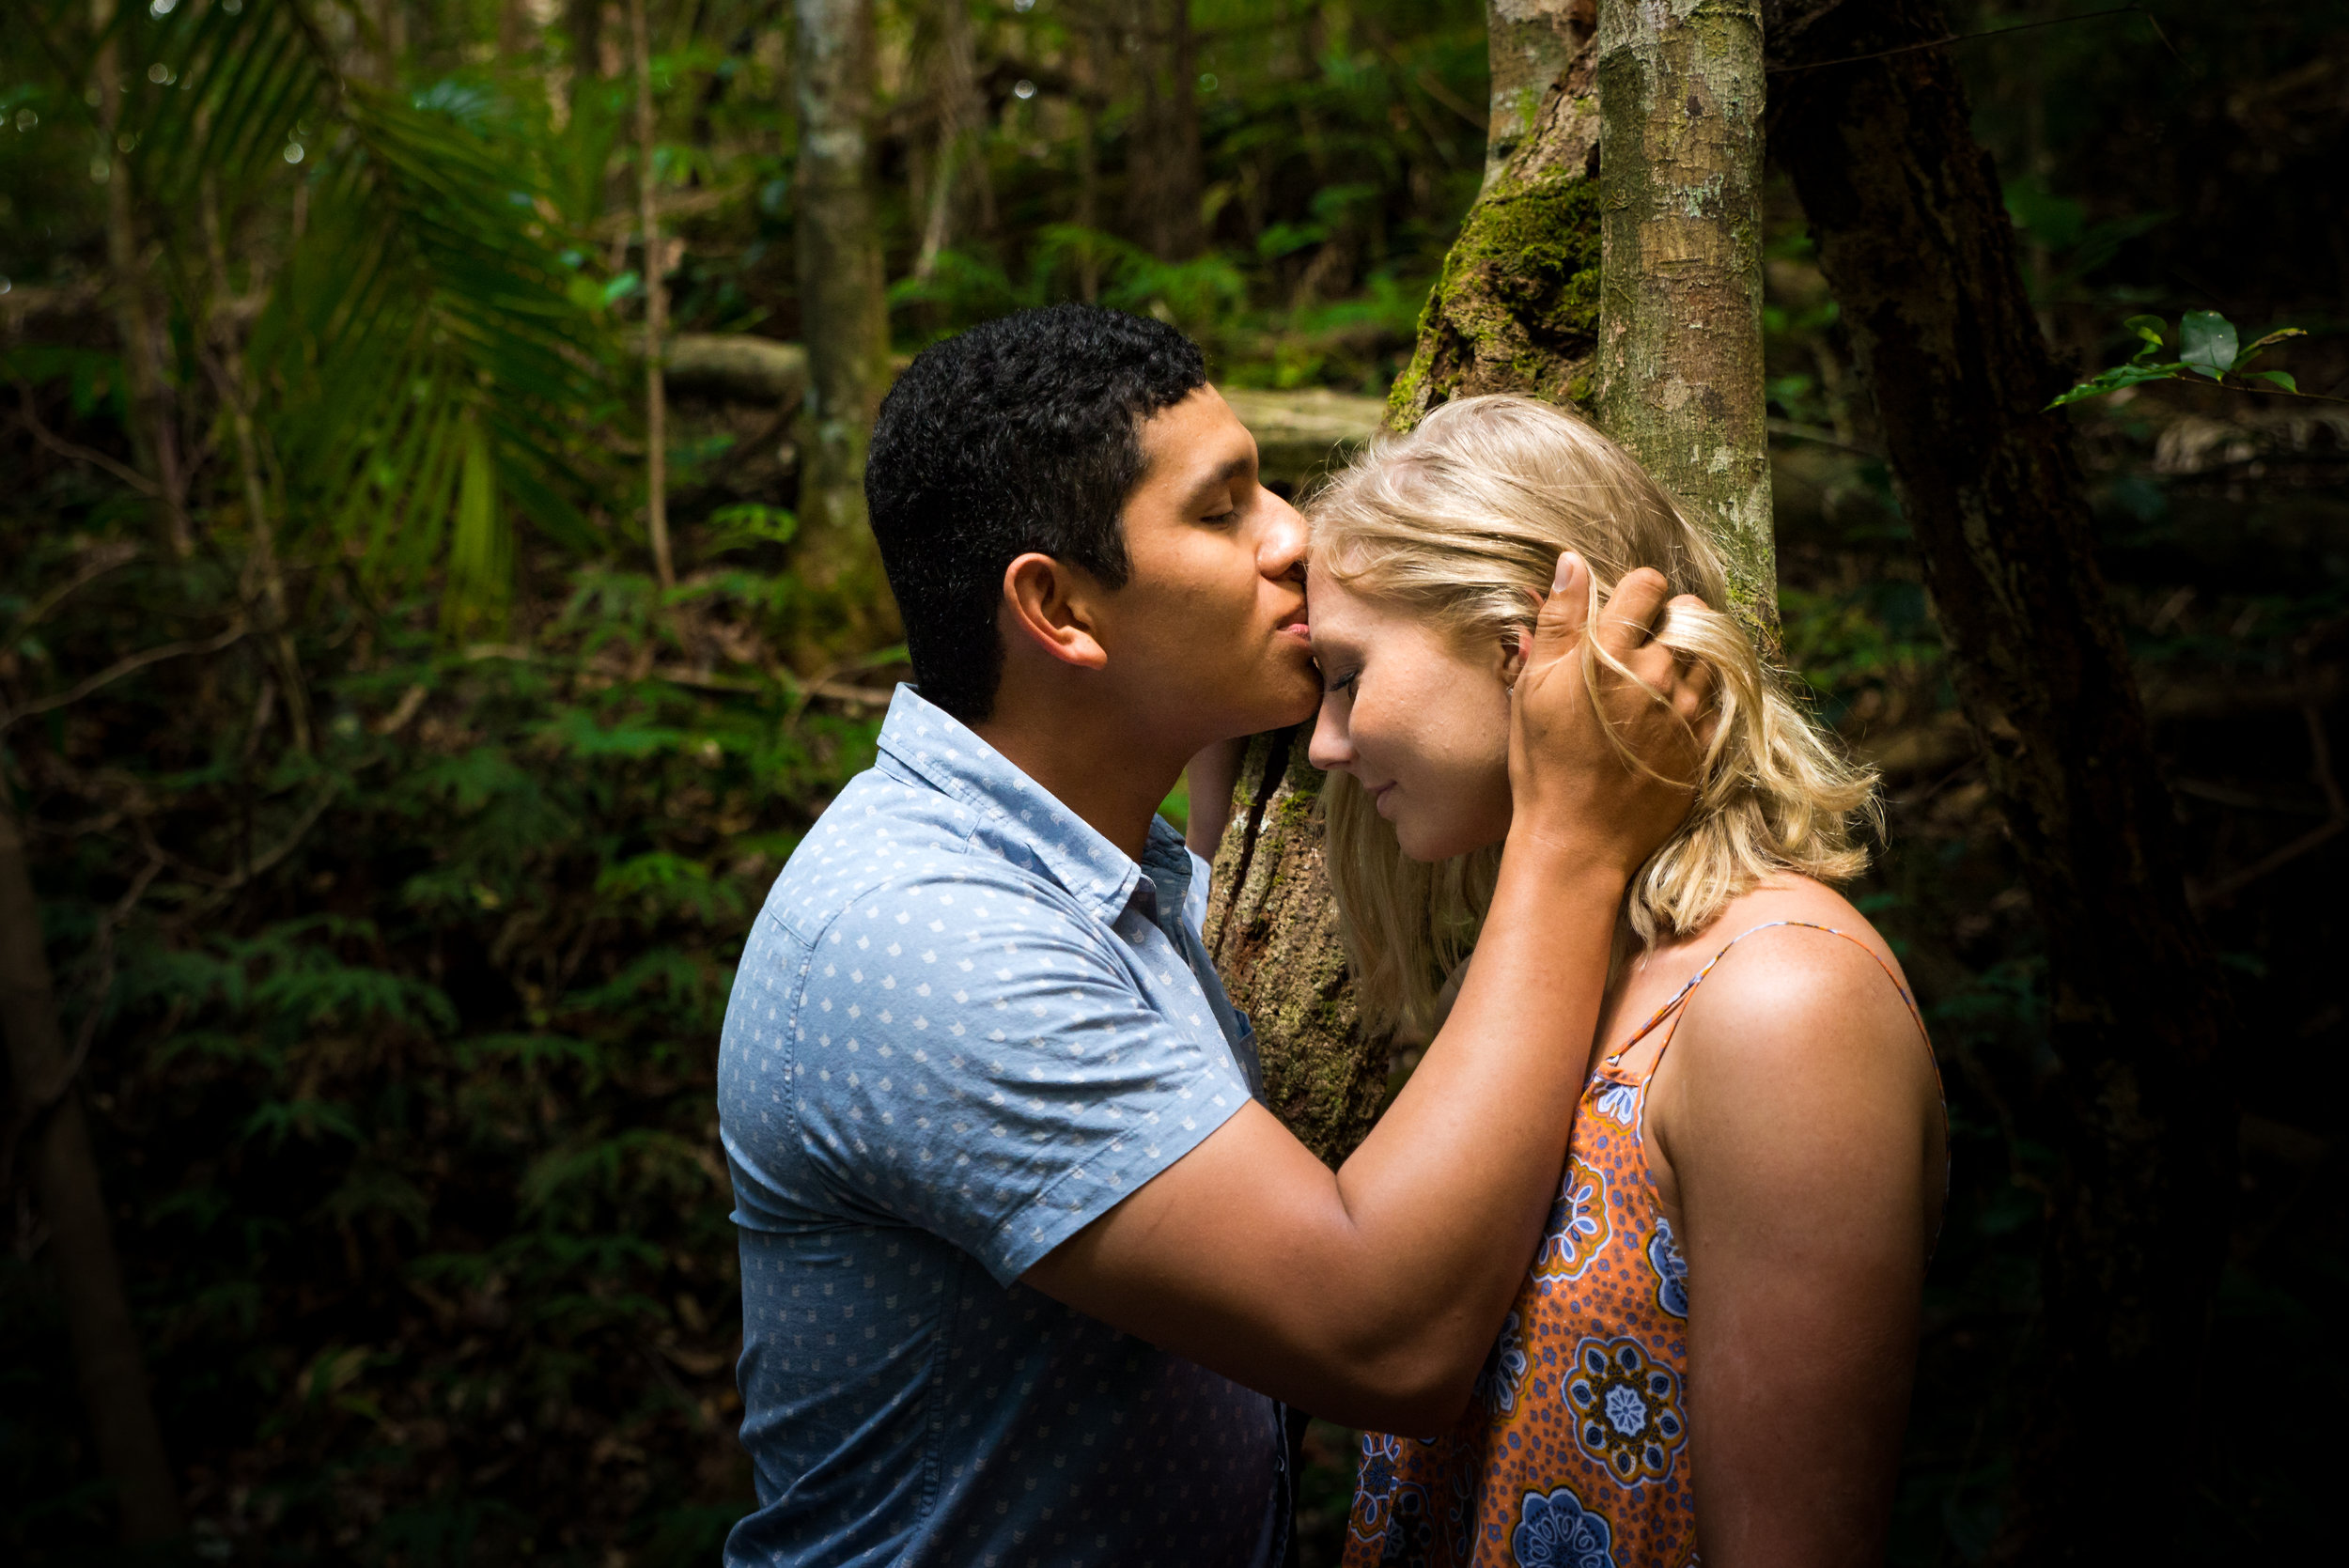 Engaged couple in rain forest